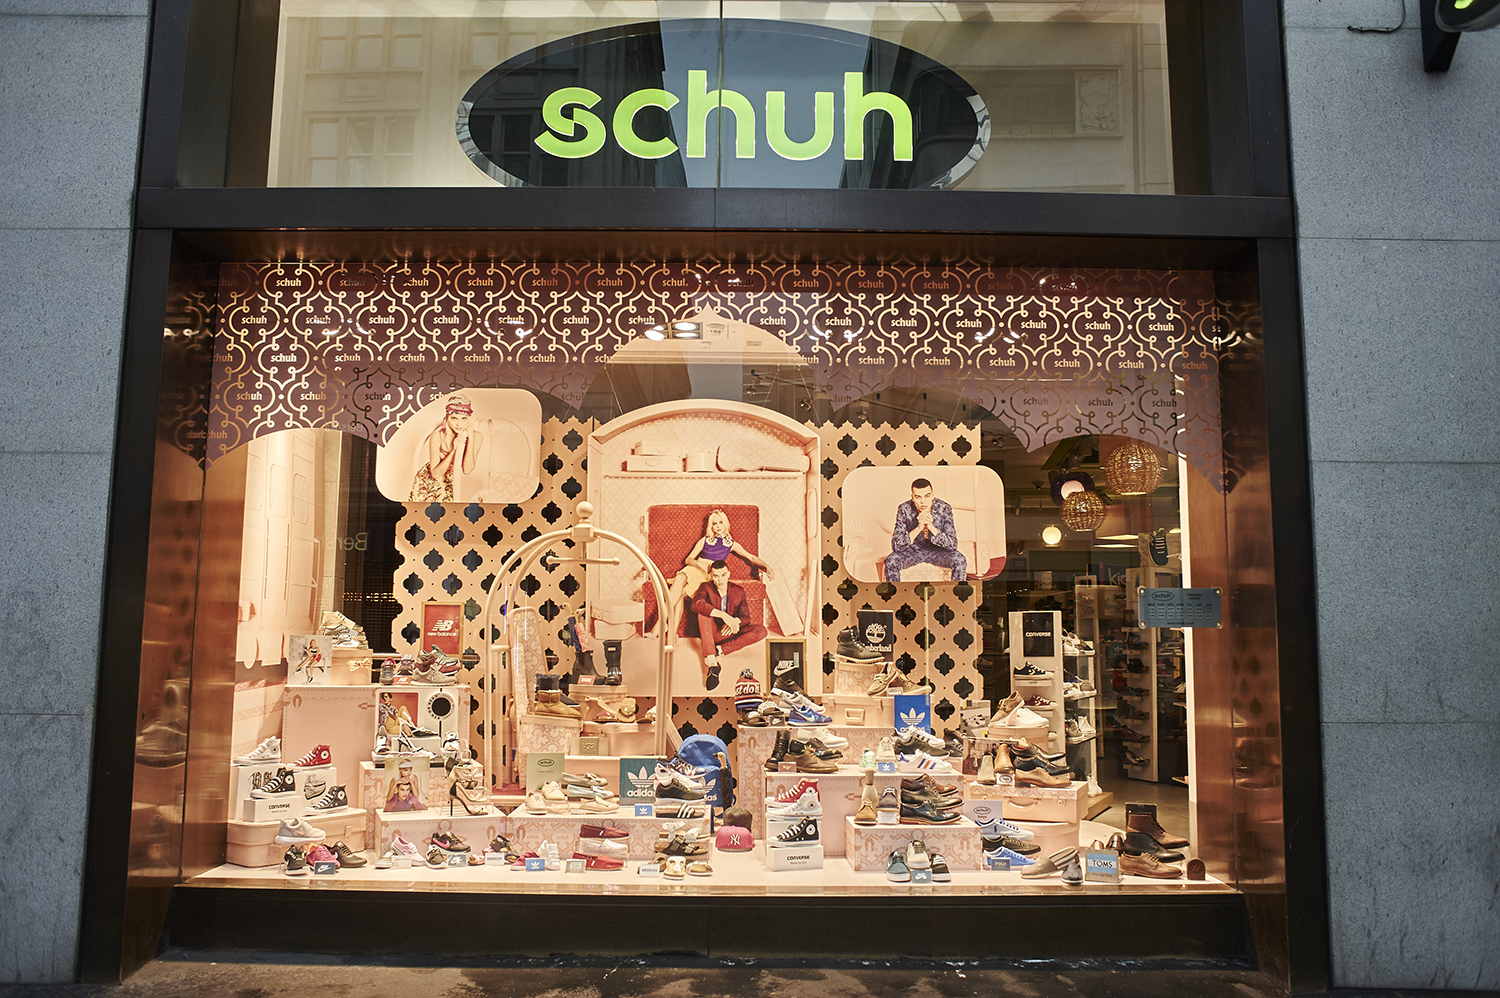 SCHUH+STAND+OUT+-+WINDOW+-+ROAR+CREATIVITY+-+JOHNNY+ACE.jpg